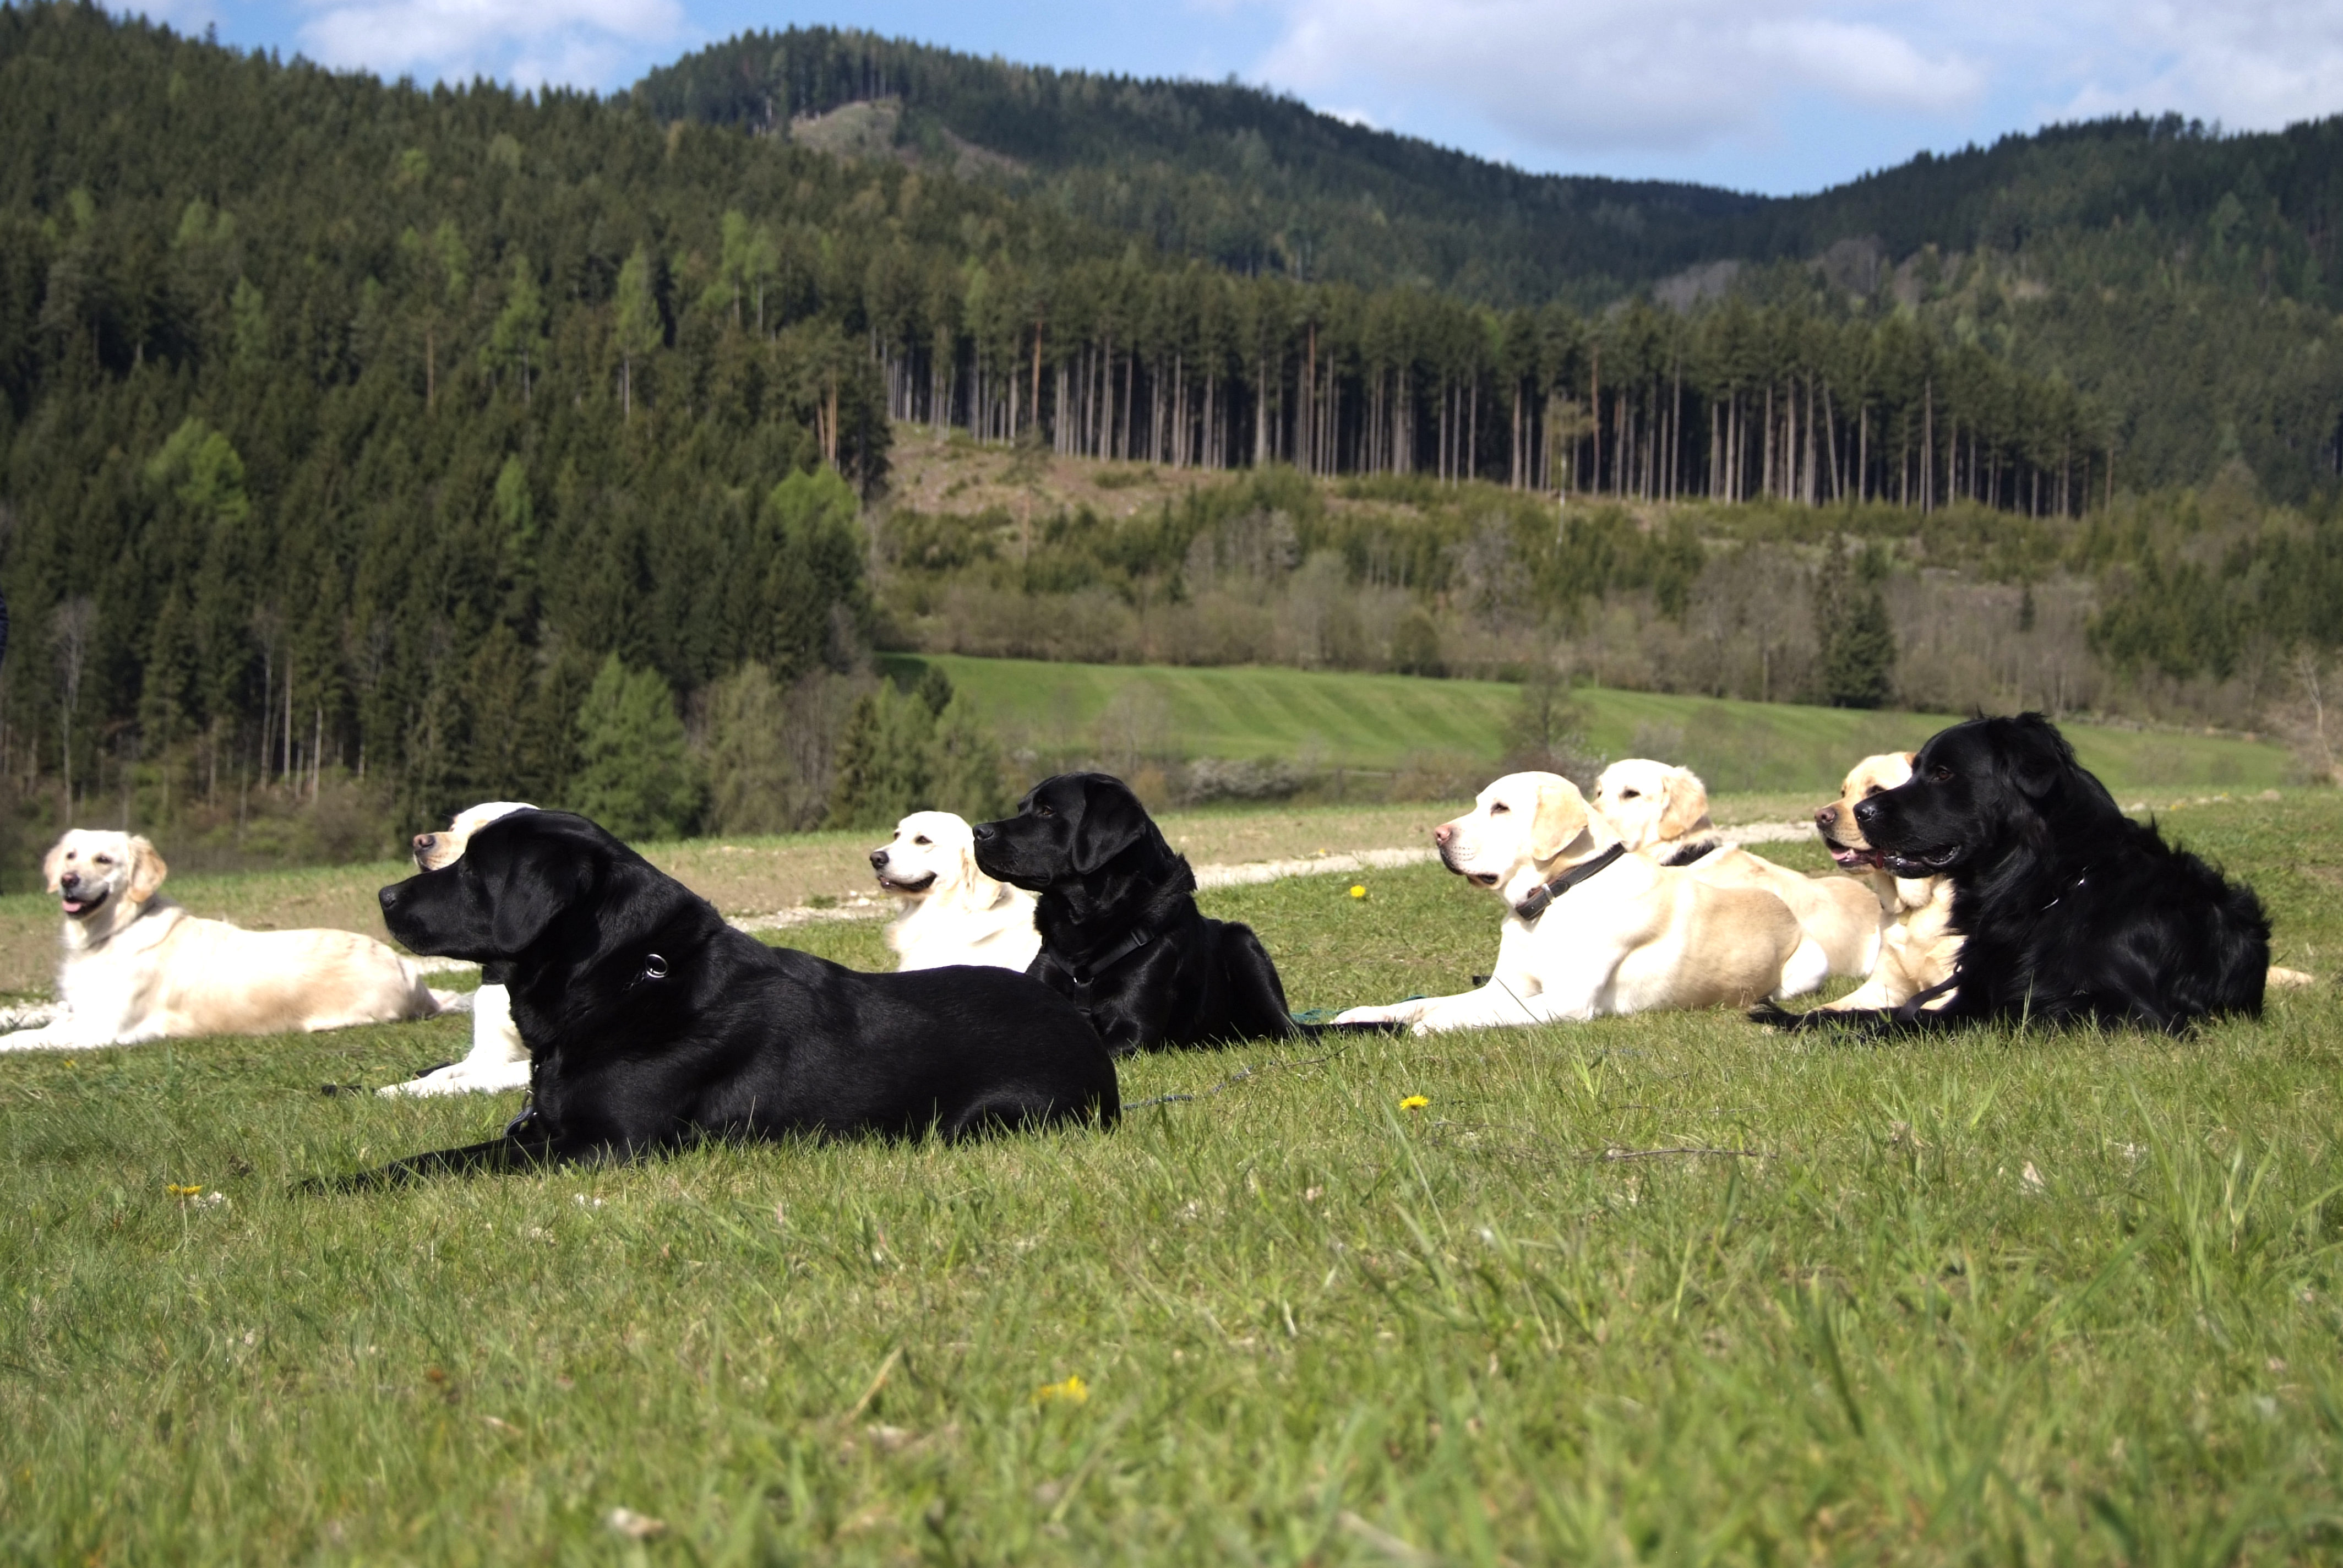 dogs-in-formation-1165304